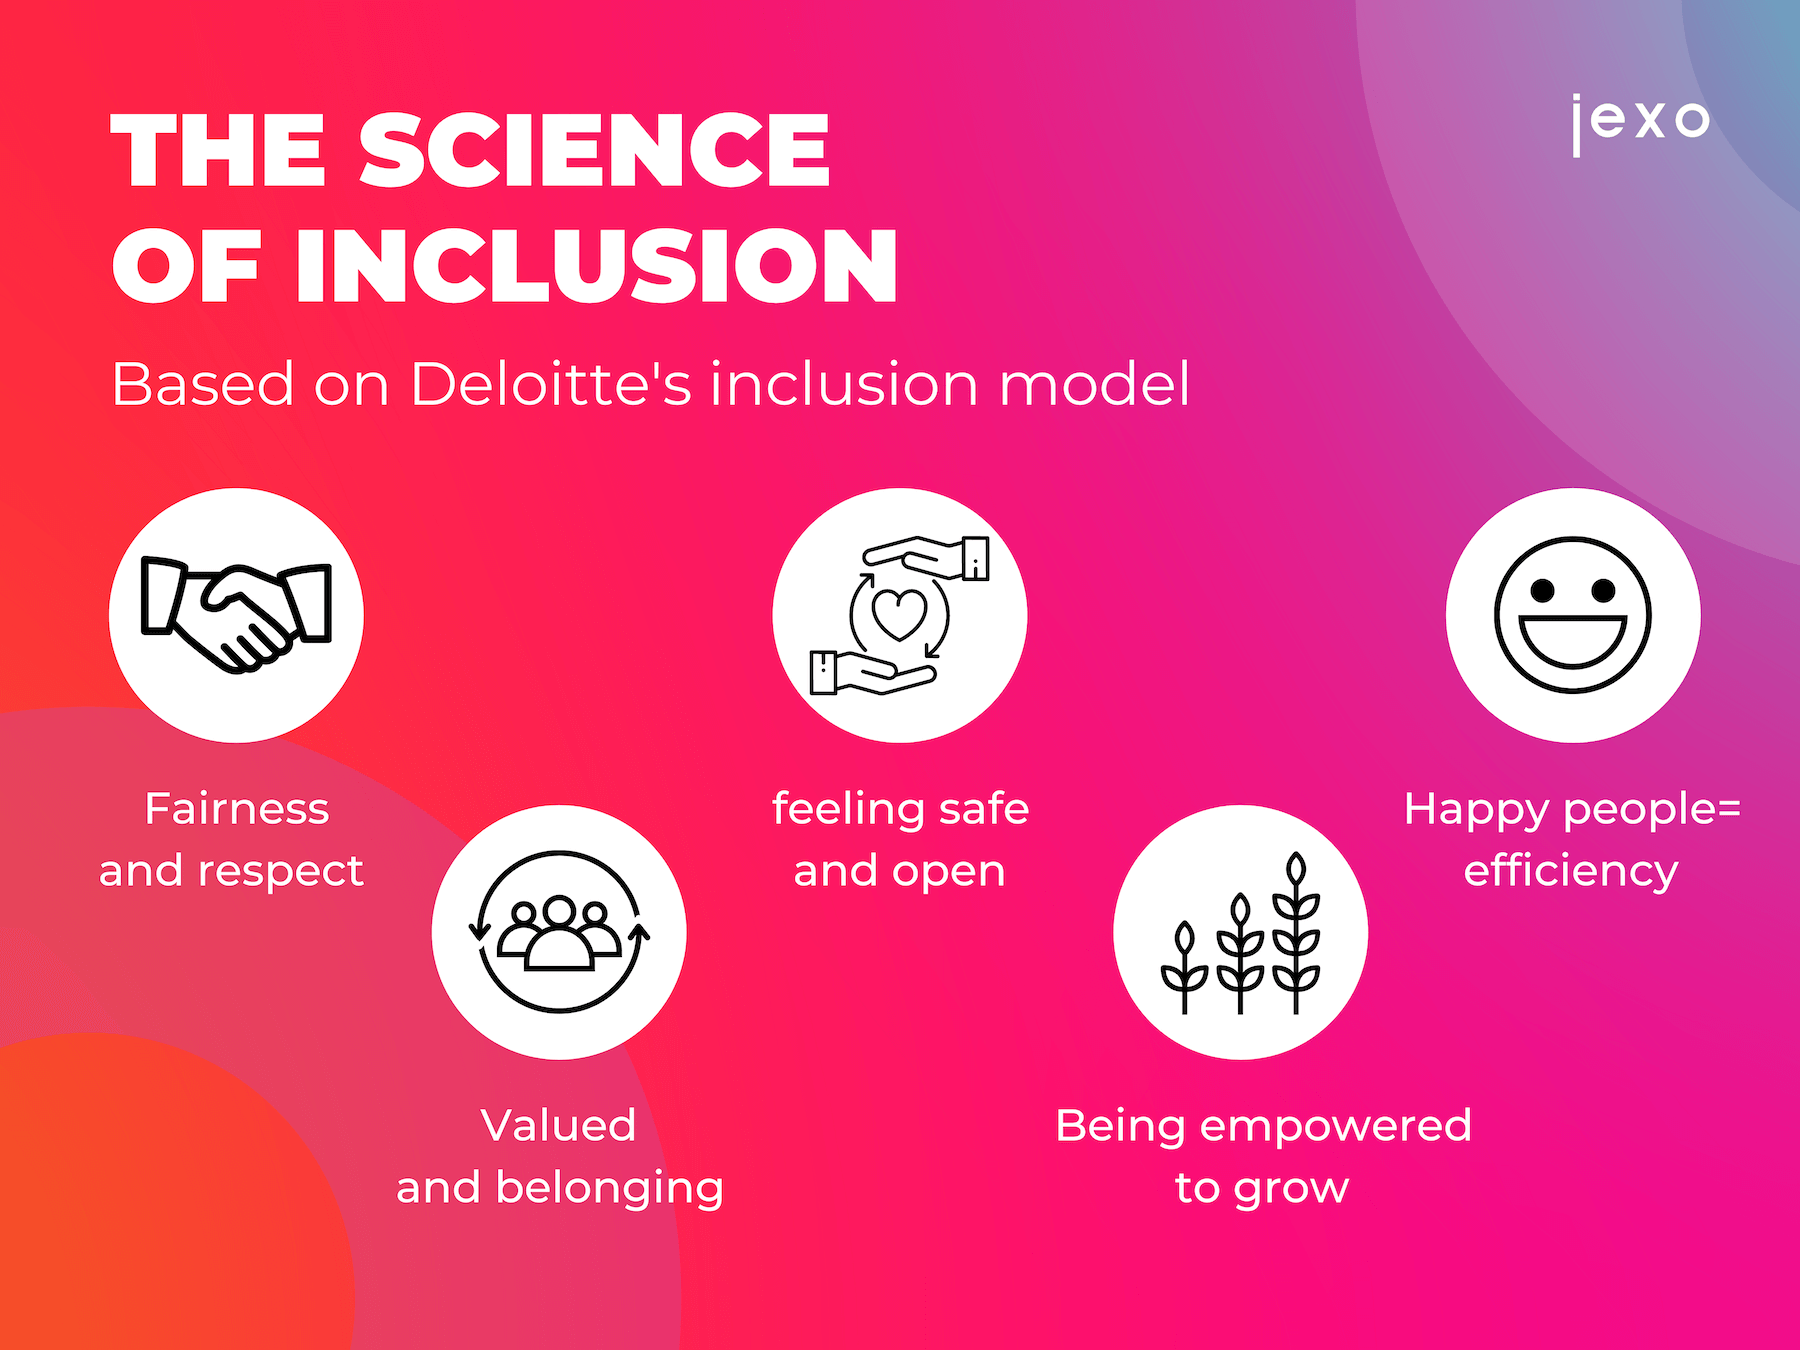 Images show Deloitte's inclusion model of Fairness and respect, valued and belonging, feeling safe and open, being empowered to grow and happy people equals efficiency.